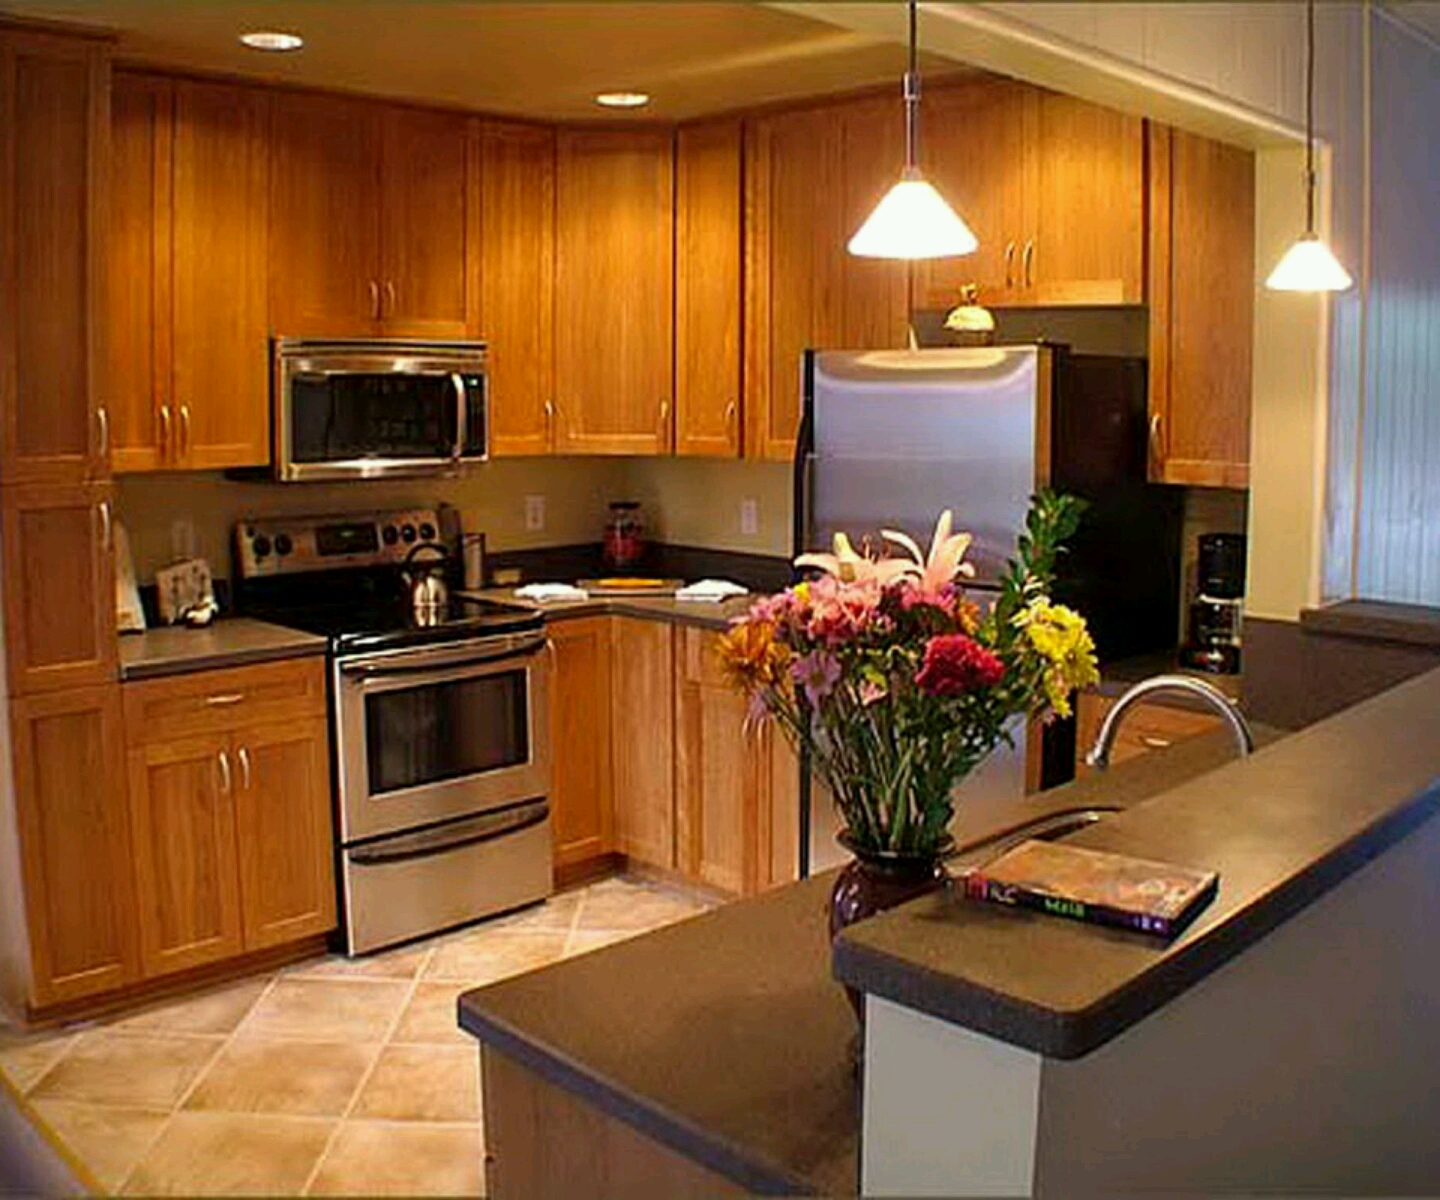 Design For Kitchen Cabinet: Modern Wooden Kitchen Cabinets Designs.